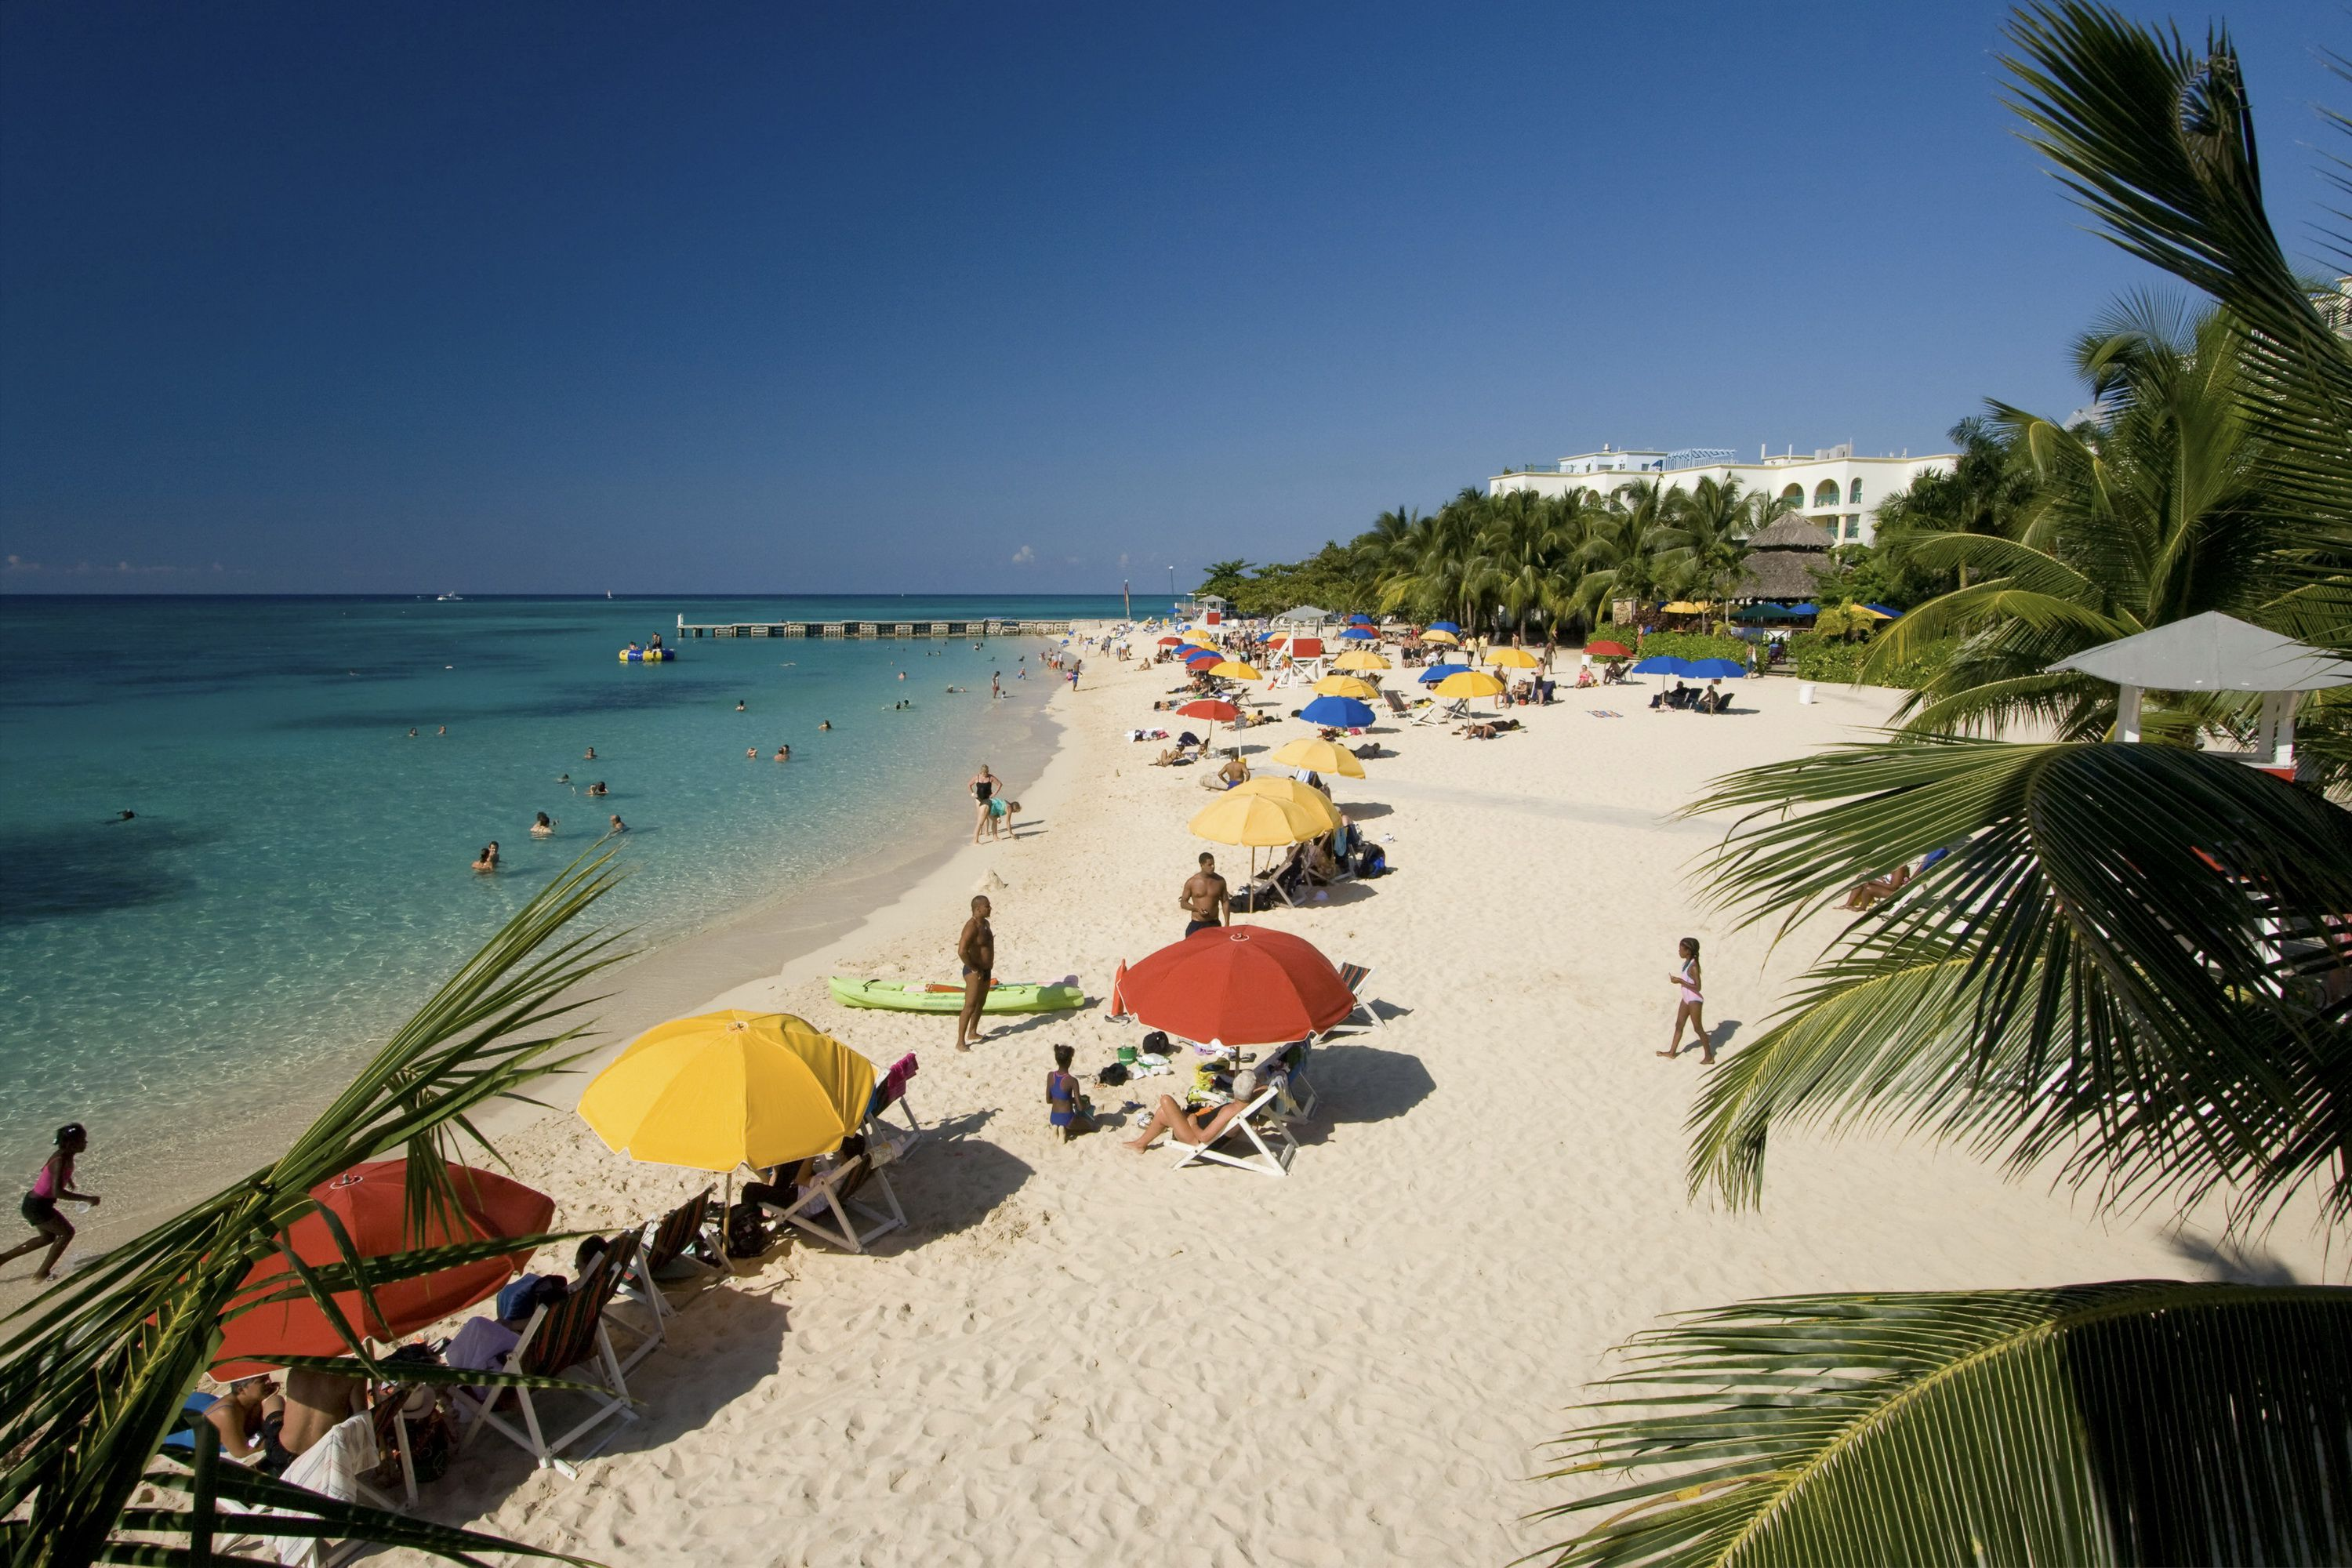 People lounging on the beach in Montego Bay, Jamaica